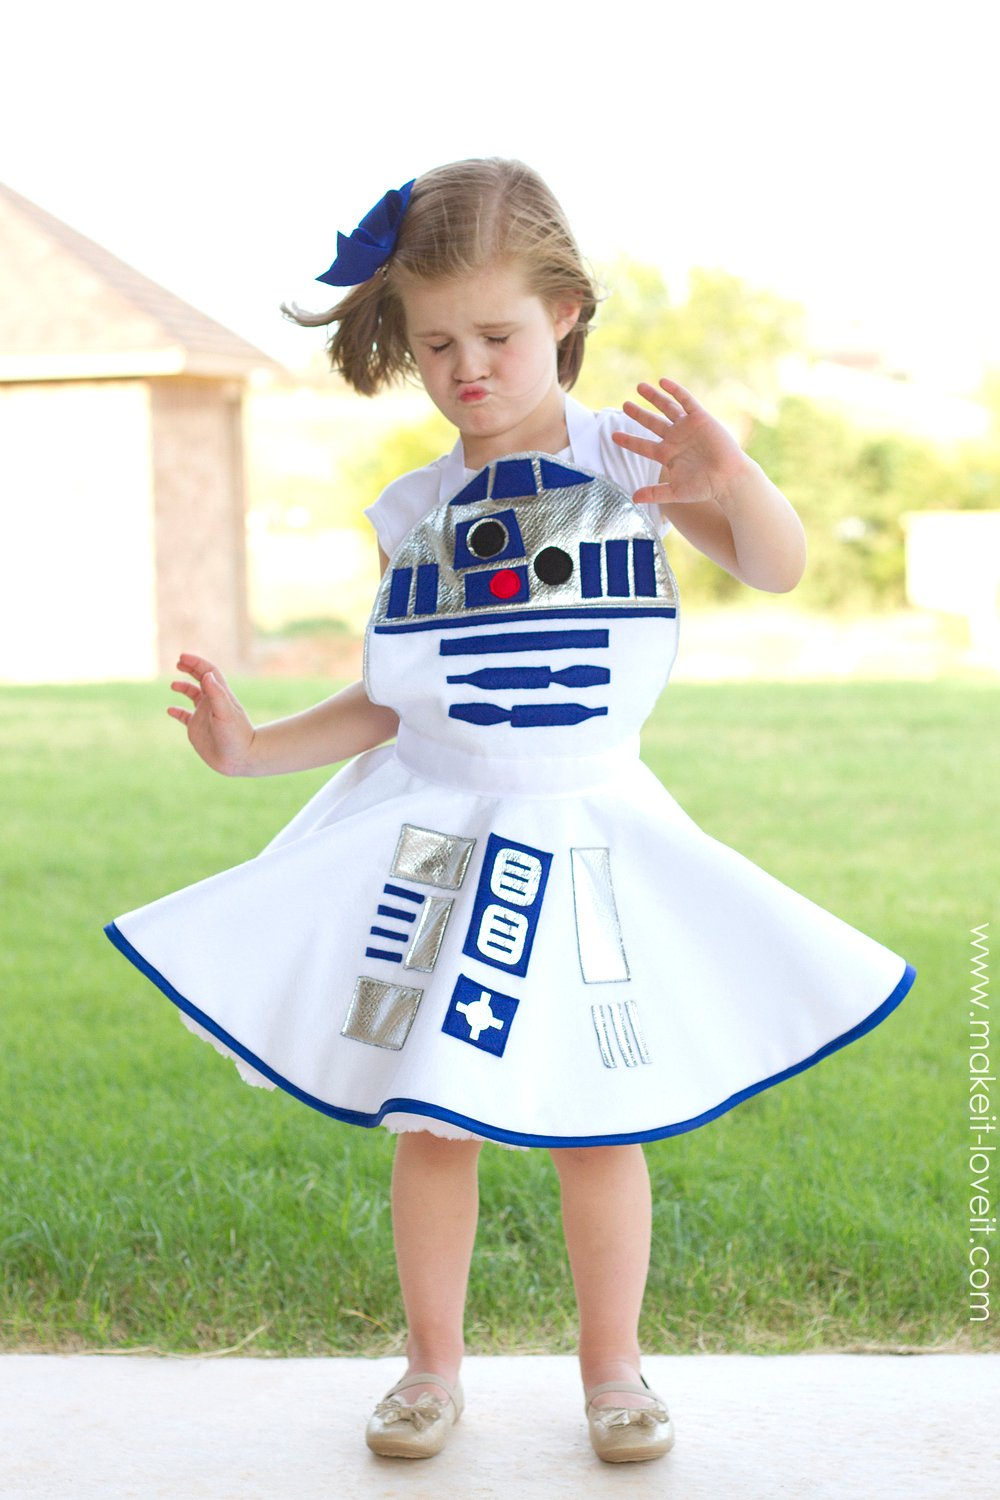 R2-D2 Costume WINNER selected!